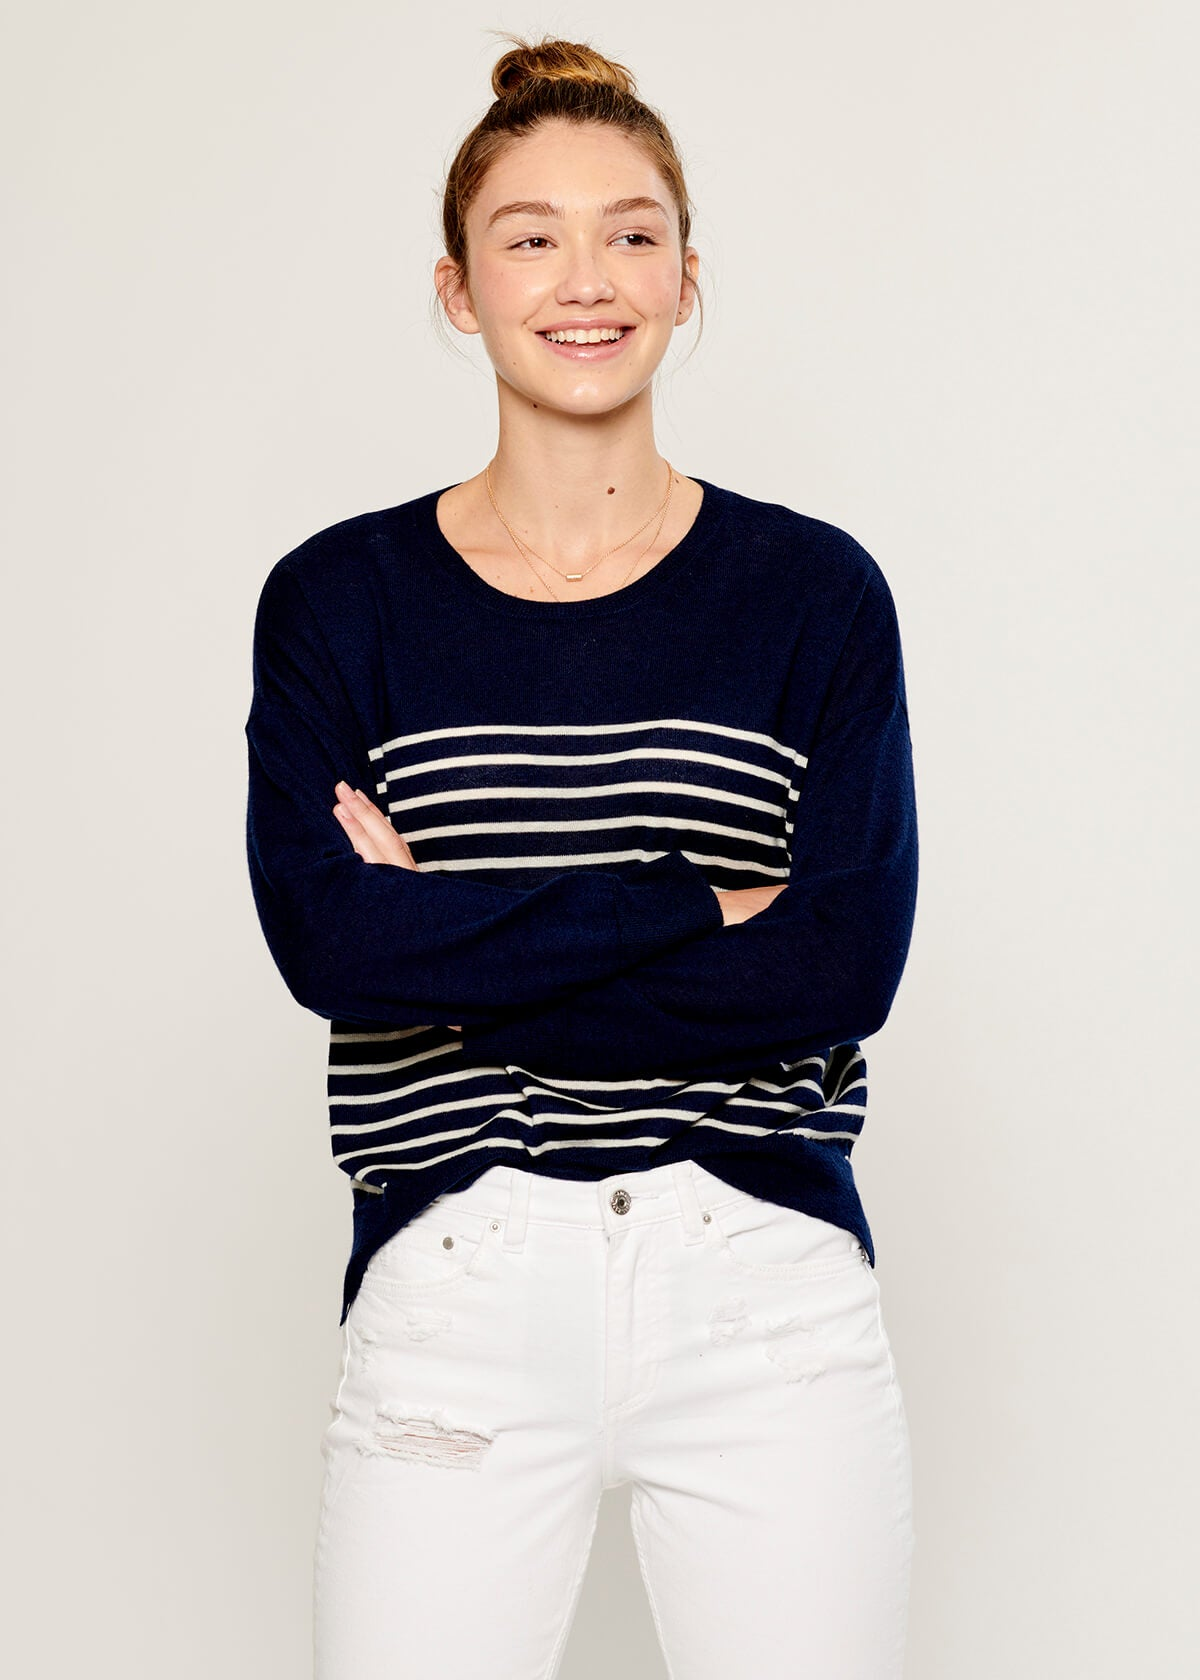 Susan - Sweater - Stripes - Navy and Beige